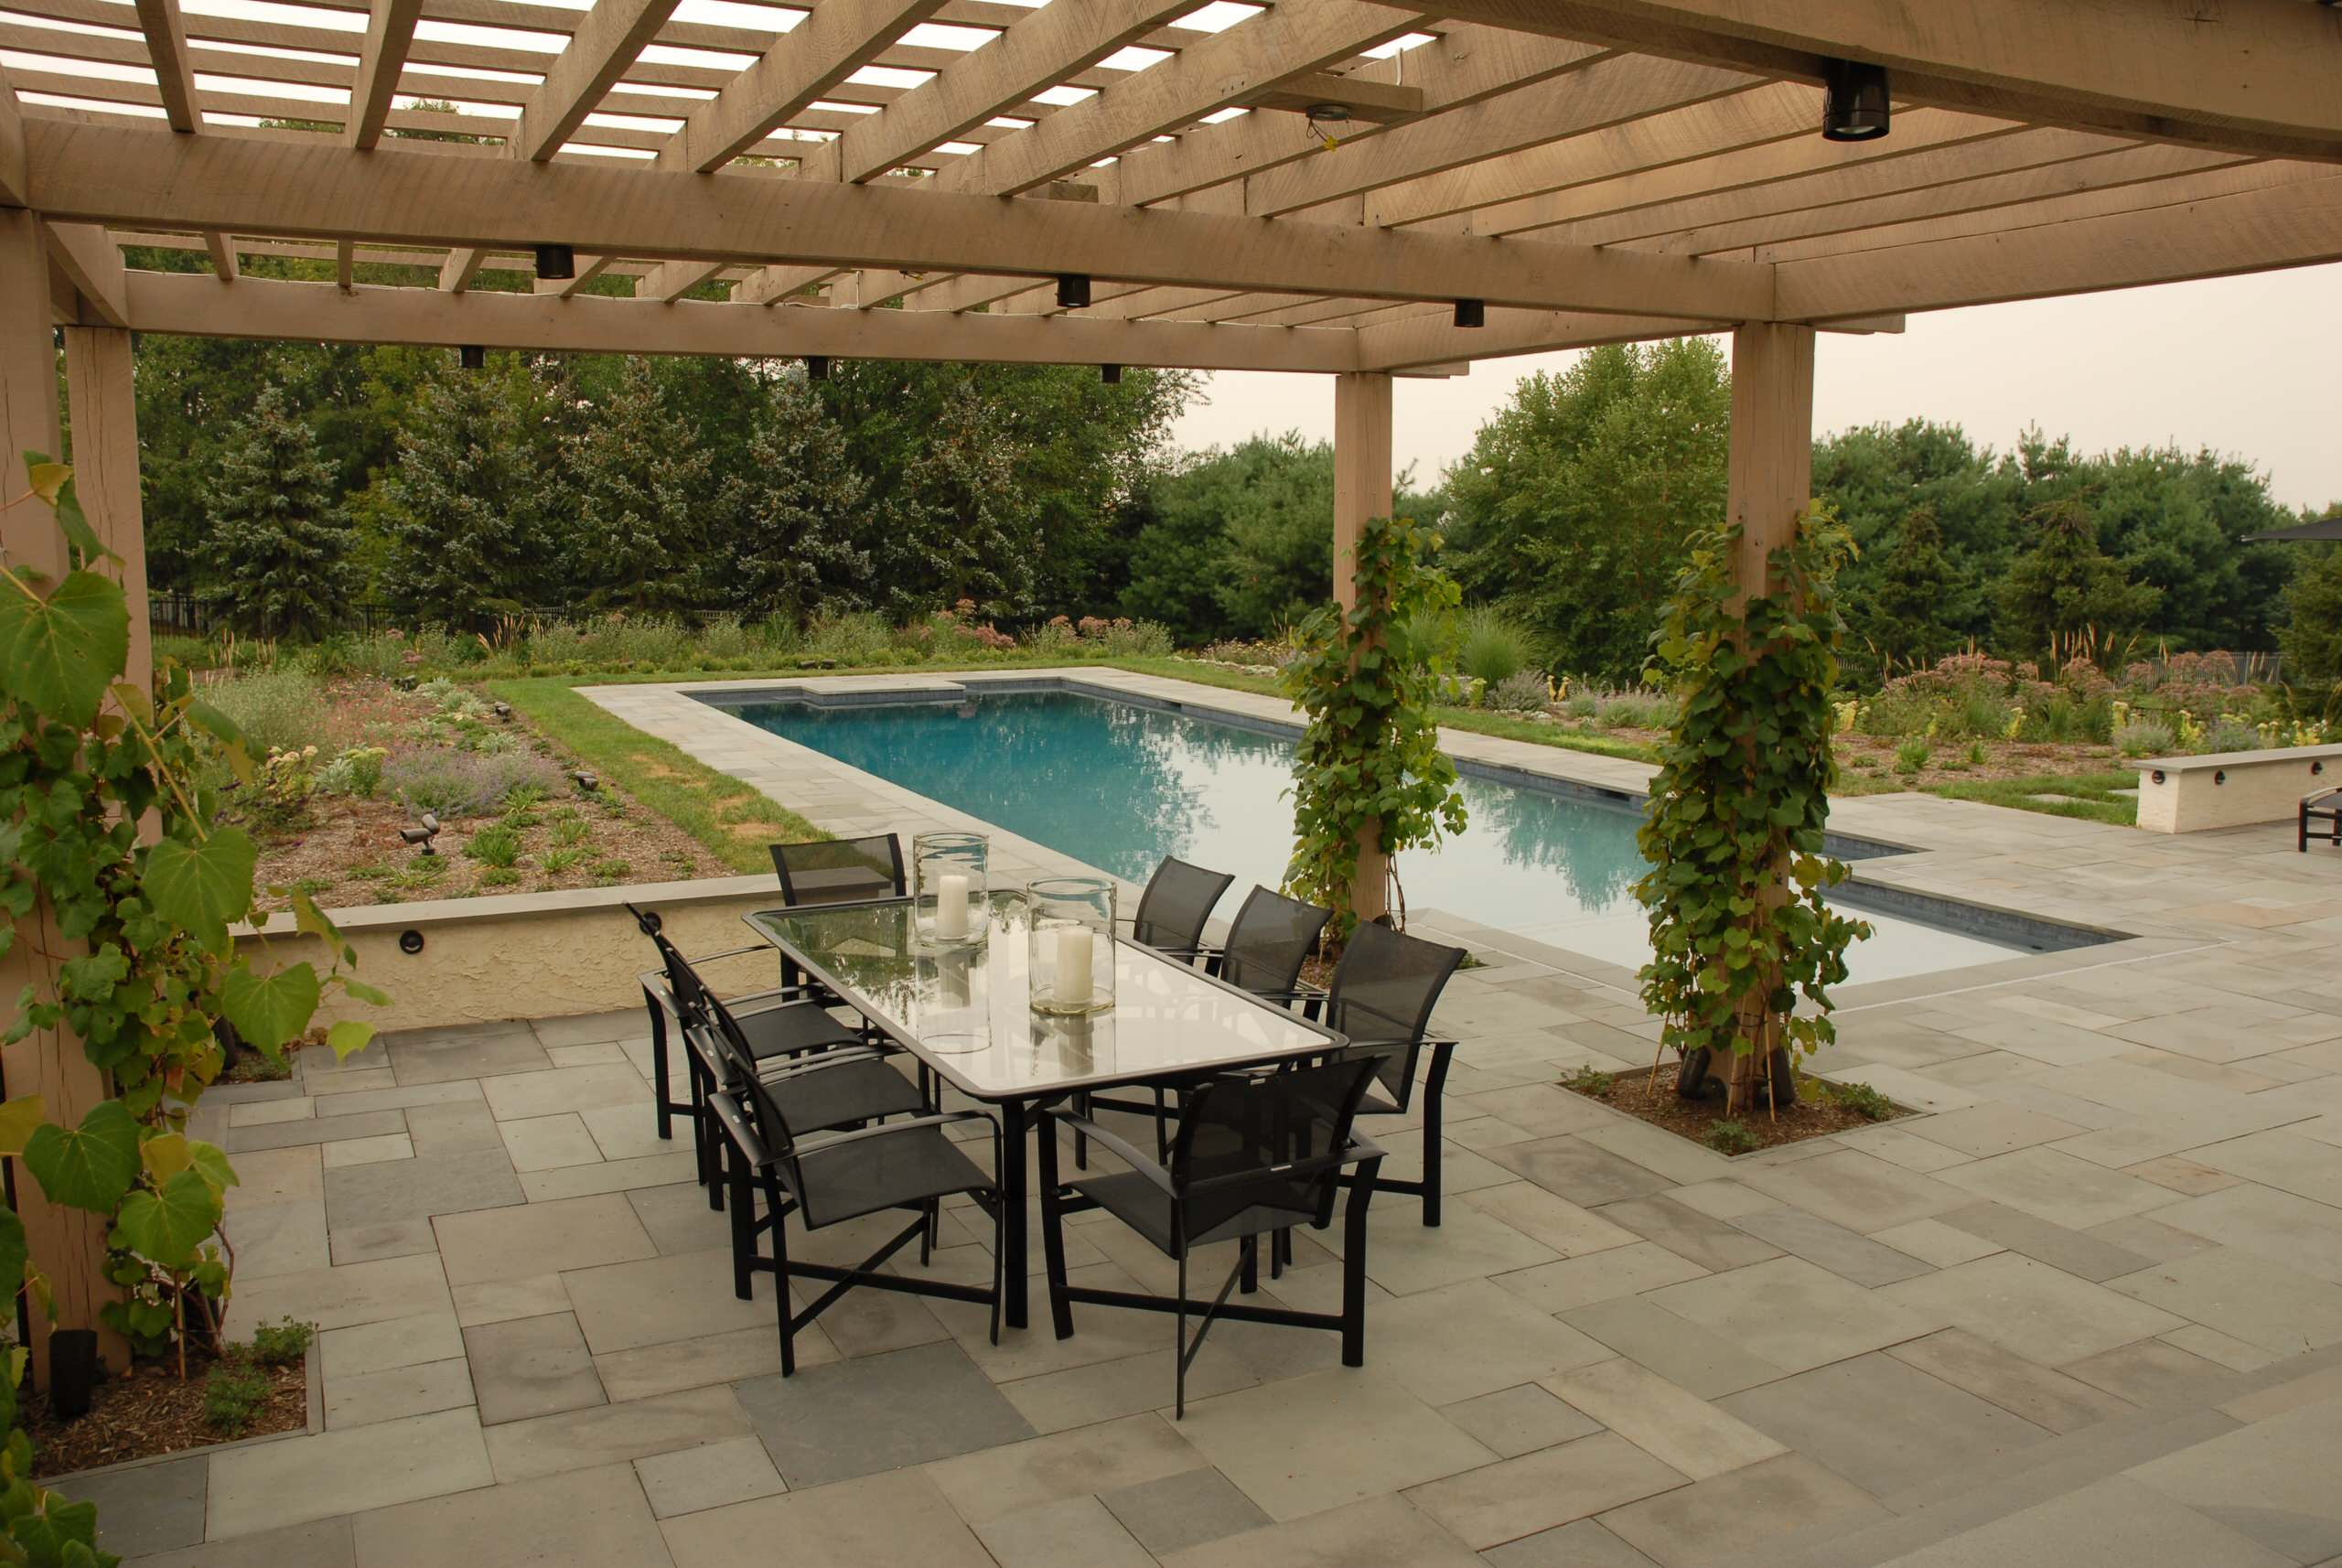 decorating chaise lounge on bluestone pavers as exterior seating